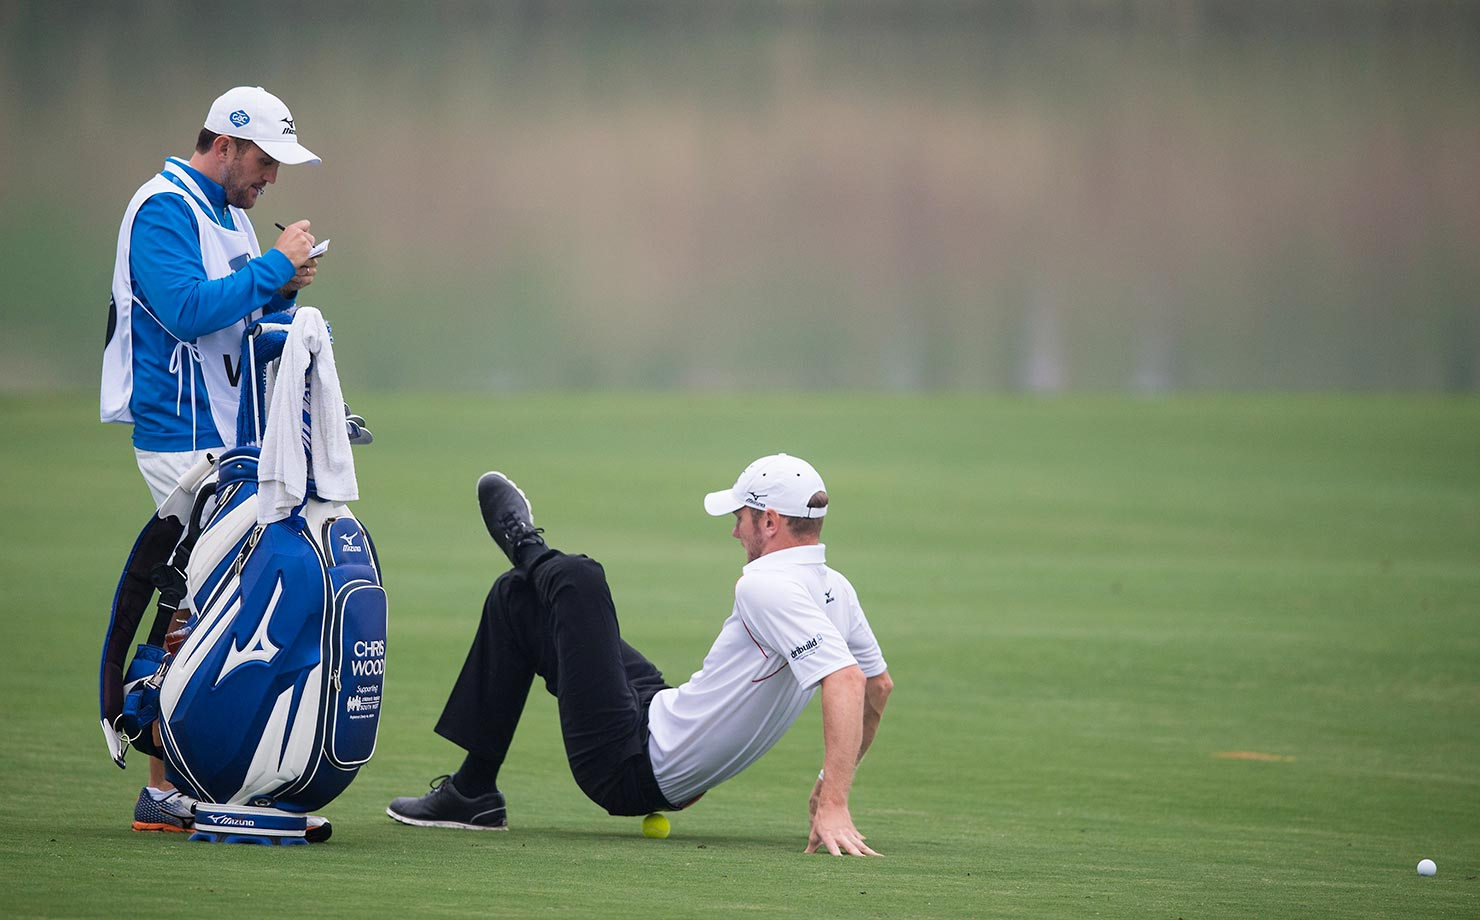 Chris Wood stretches during the BMW Shanghai Masters golf tournament.